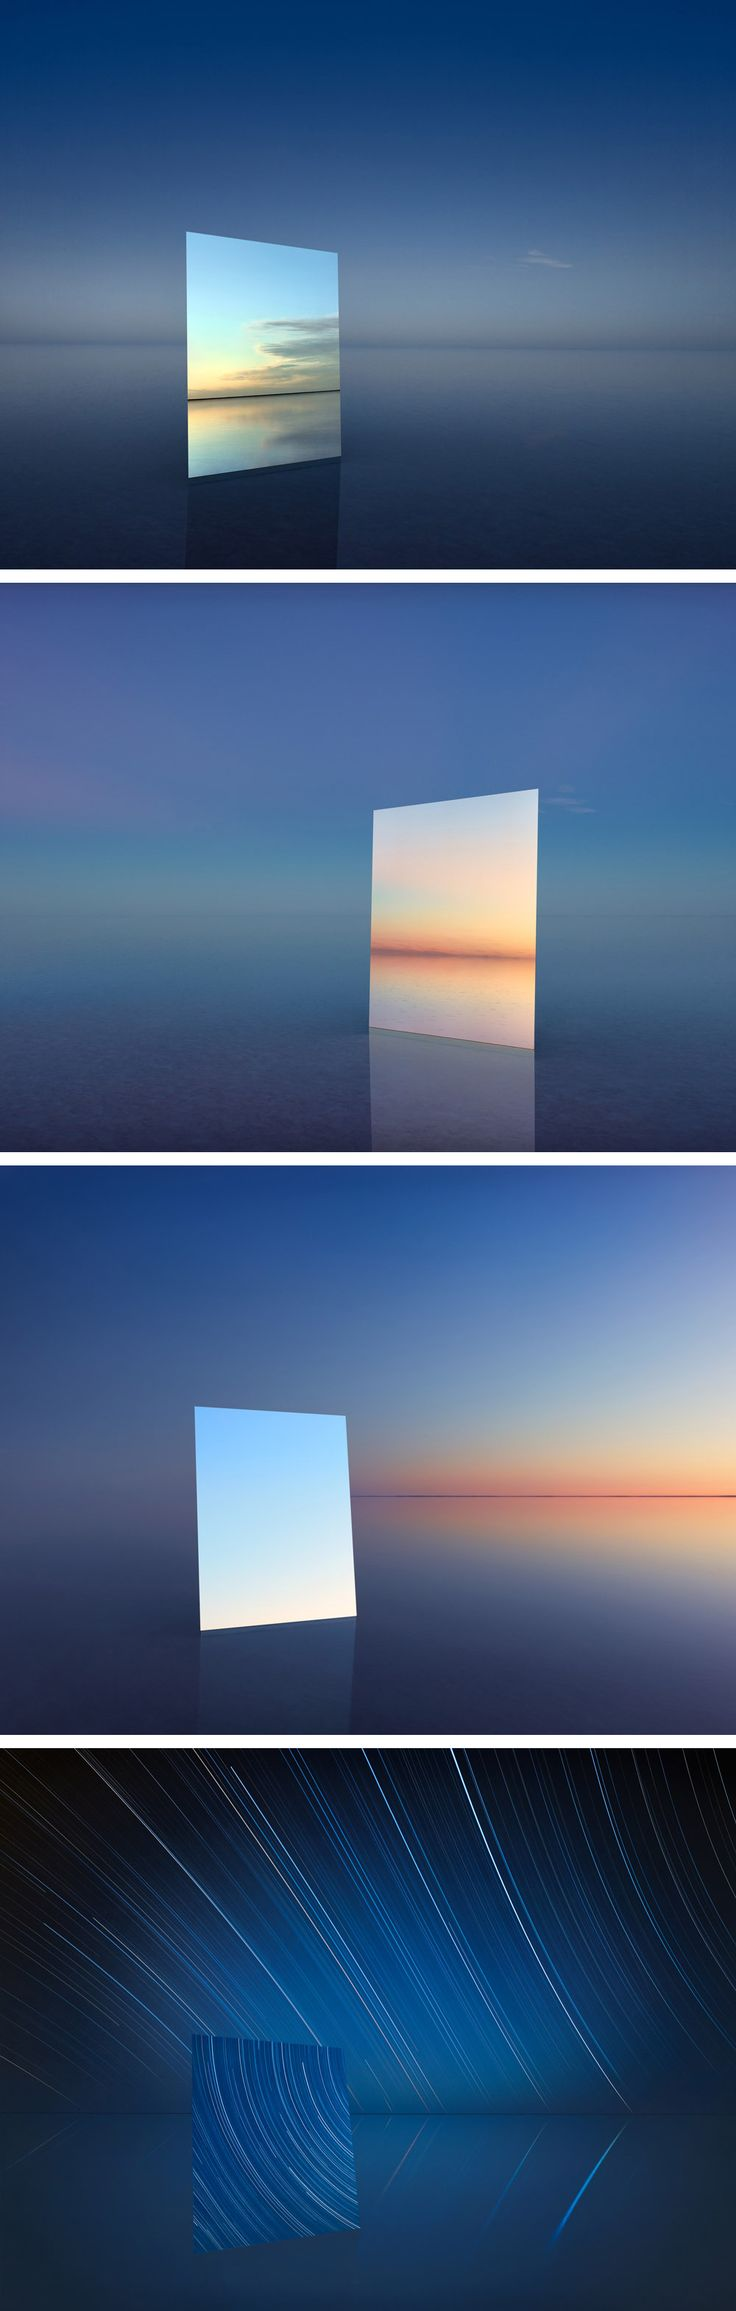 Saltscapes: Mirrors Reflect the Sky in an Australian Salt Flat Lake